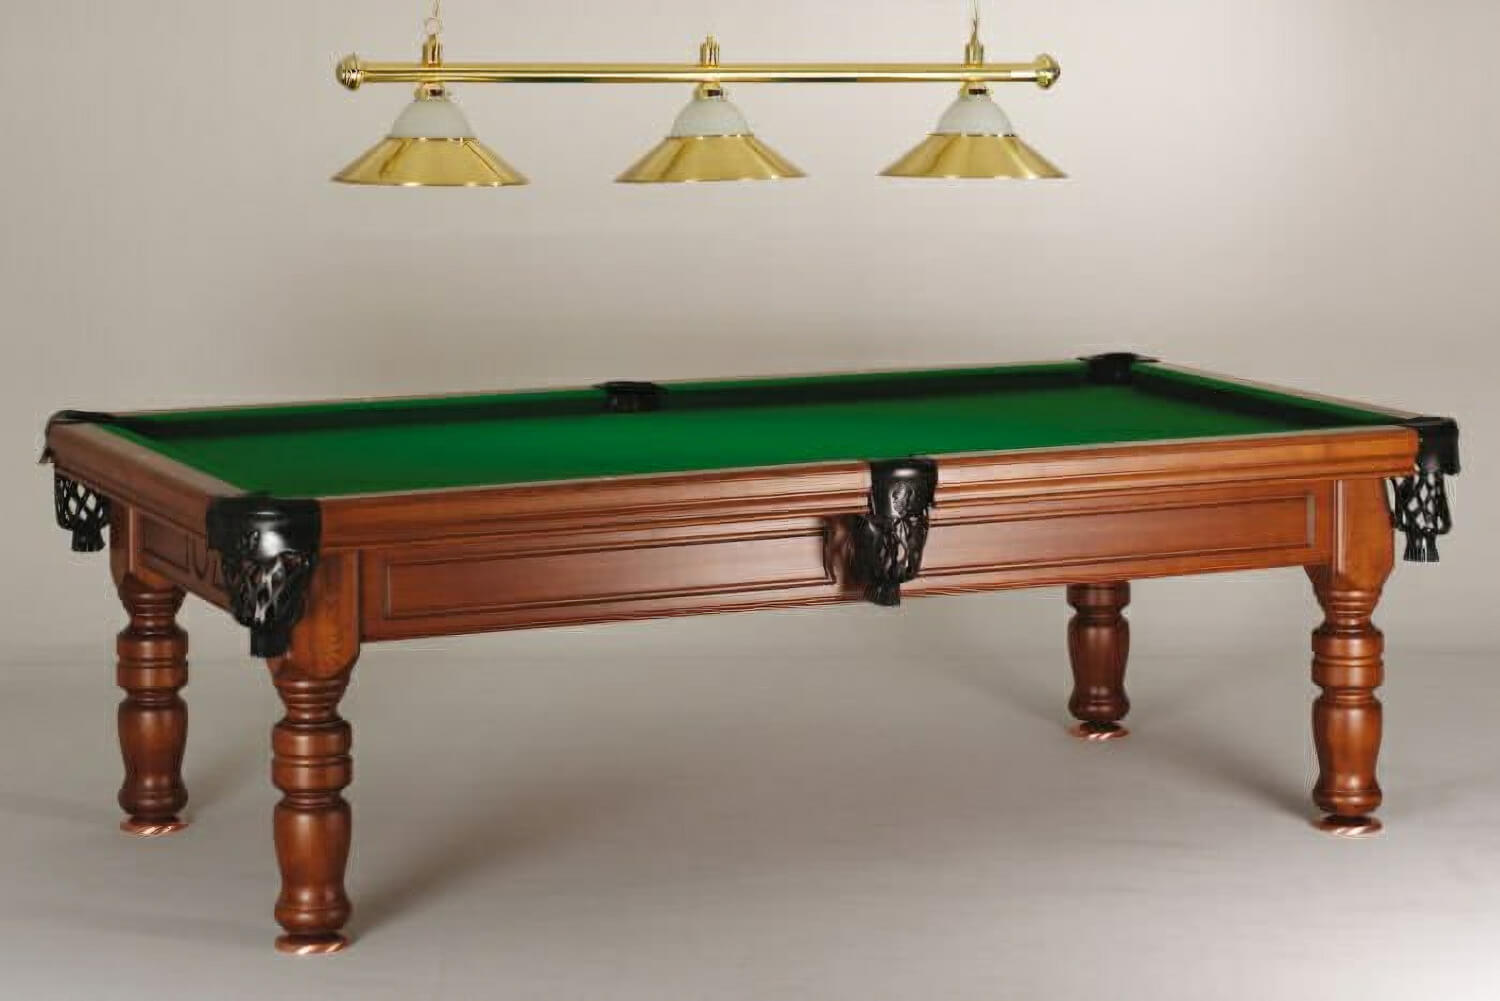 Bon Madrid Vintage Pool Table (LIghting Not Included)